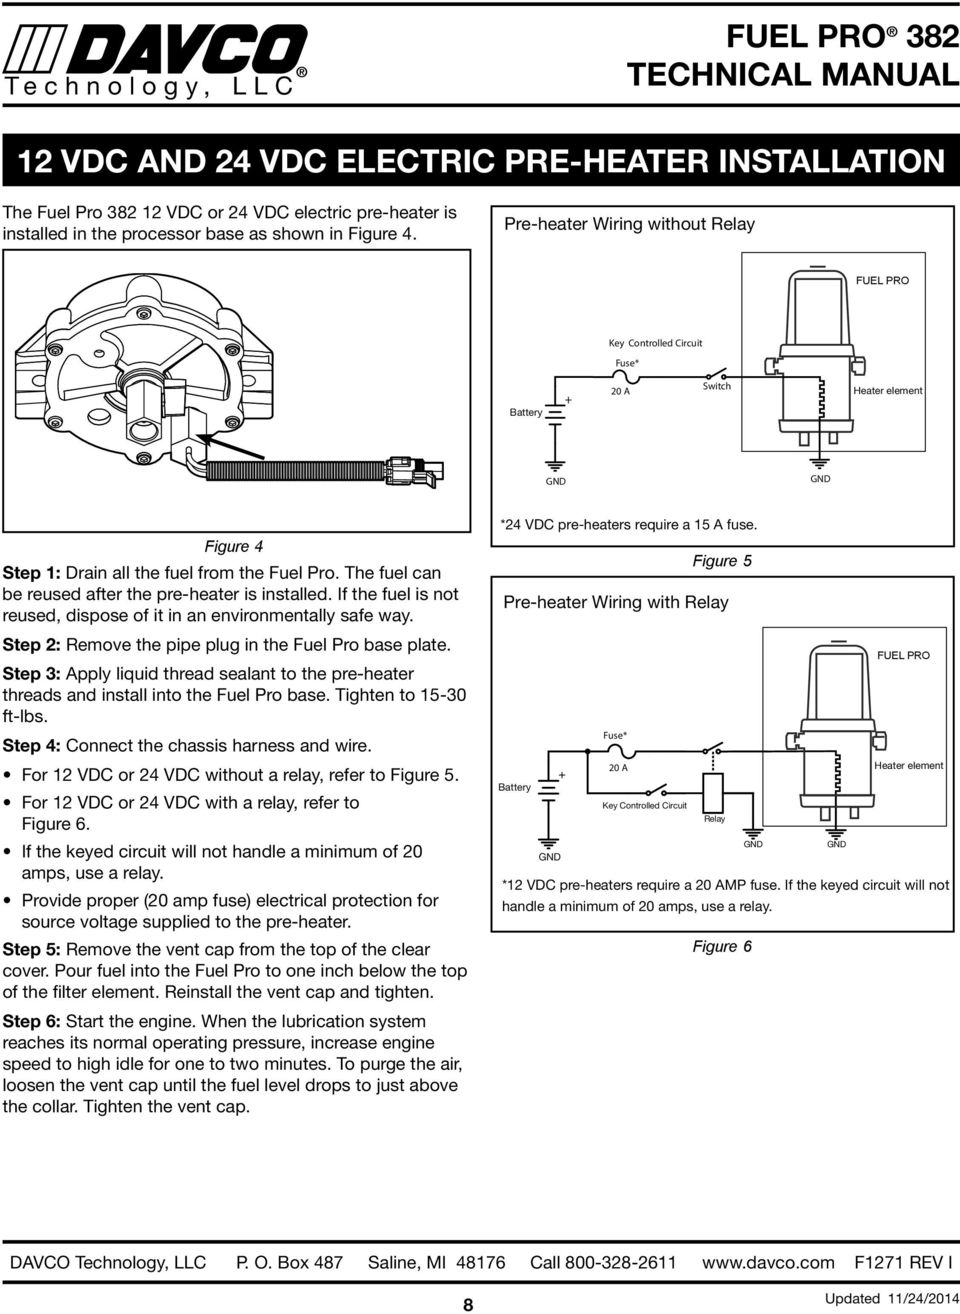 hight resolution of the fuel can be reused after the pre heater is installed if the fuel